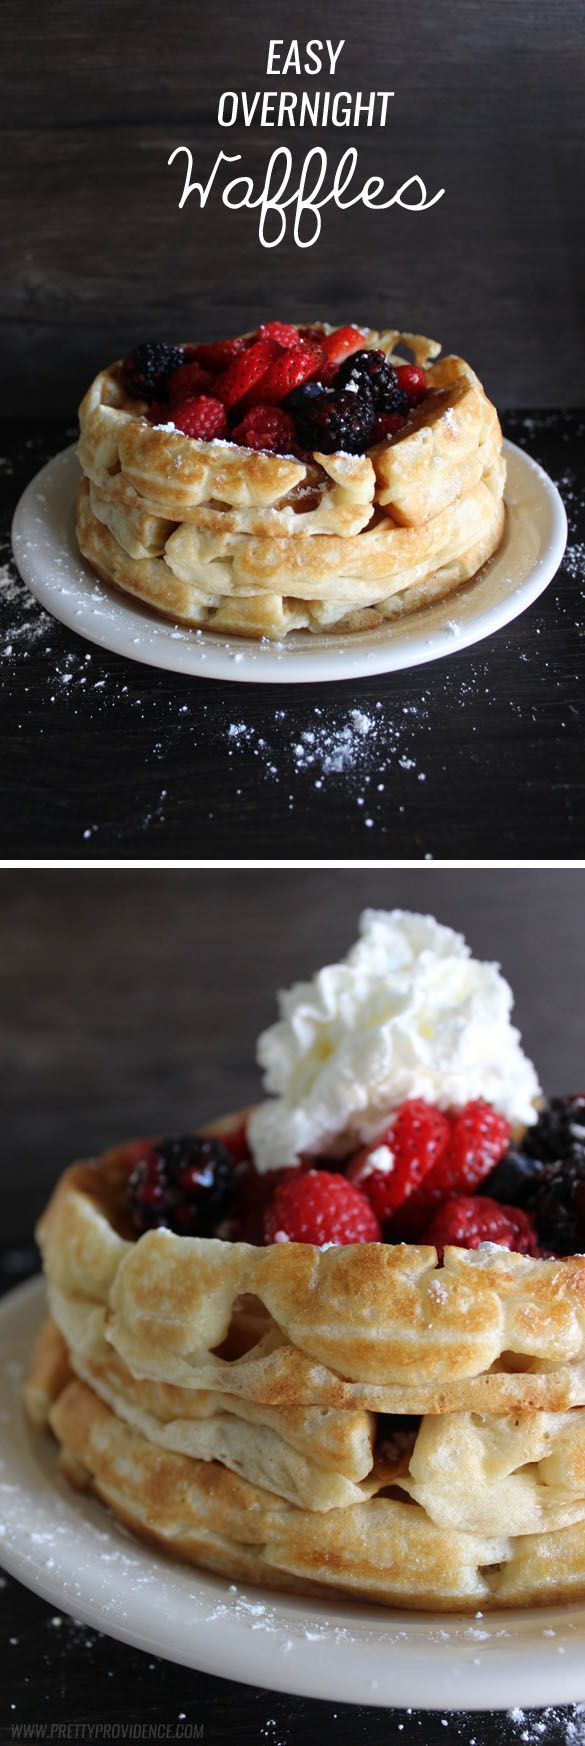 No lie, these are hands down the best waffles I have EVER eaten. We make these all the time and they never get old! So easy, too. Easy overnight waffles recipe.